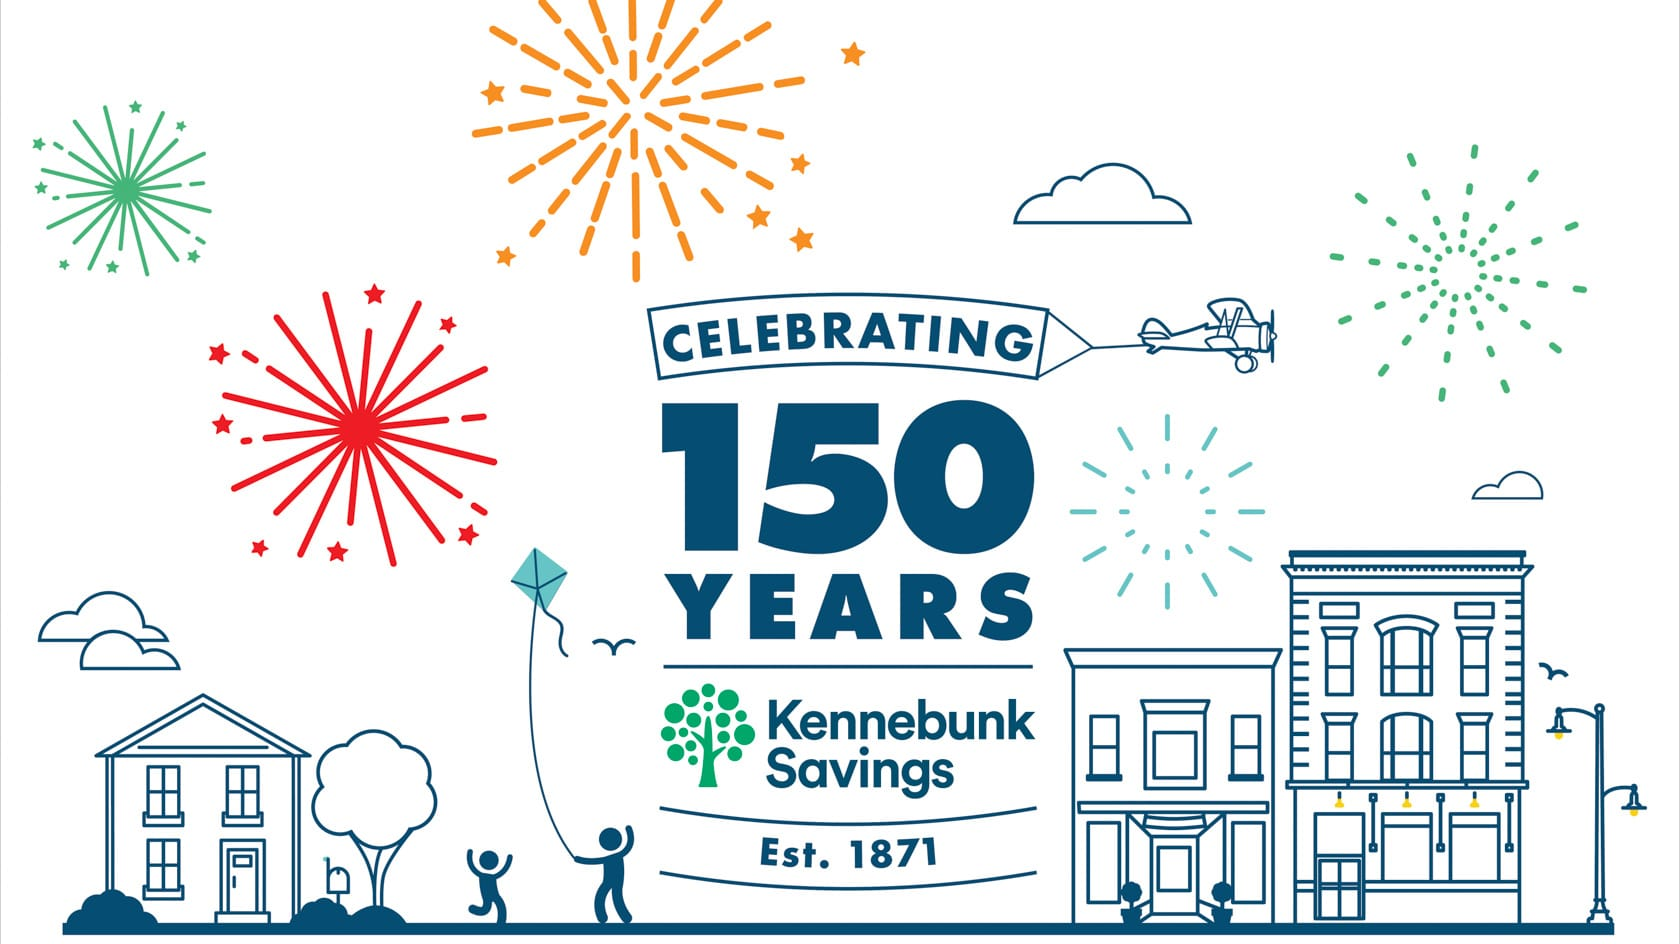 graphic of fireworks and text that reads celebrating 150 years